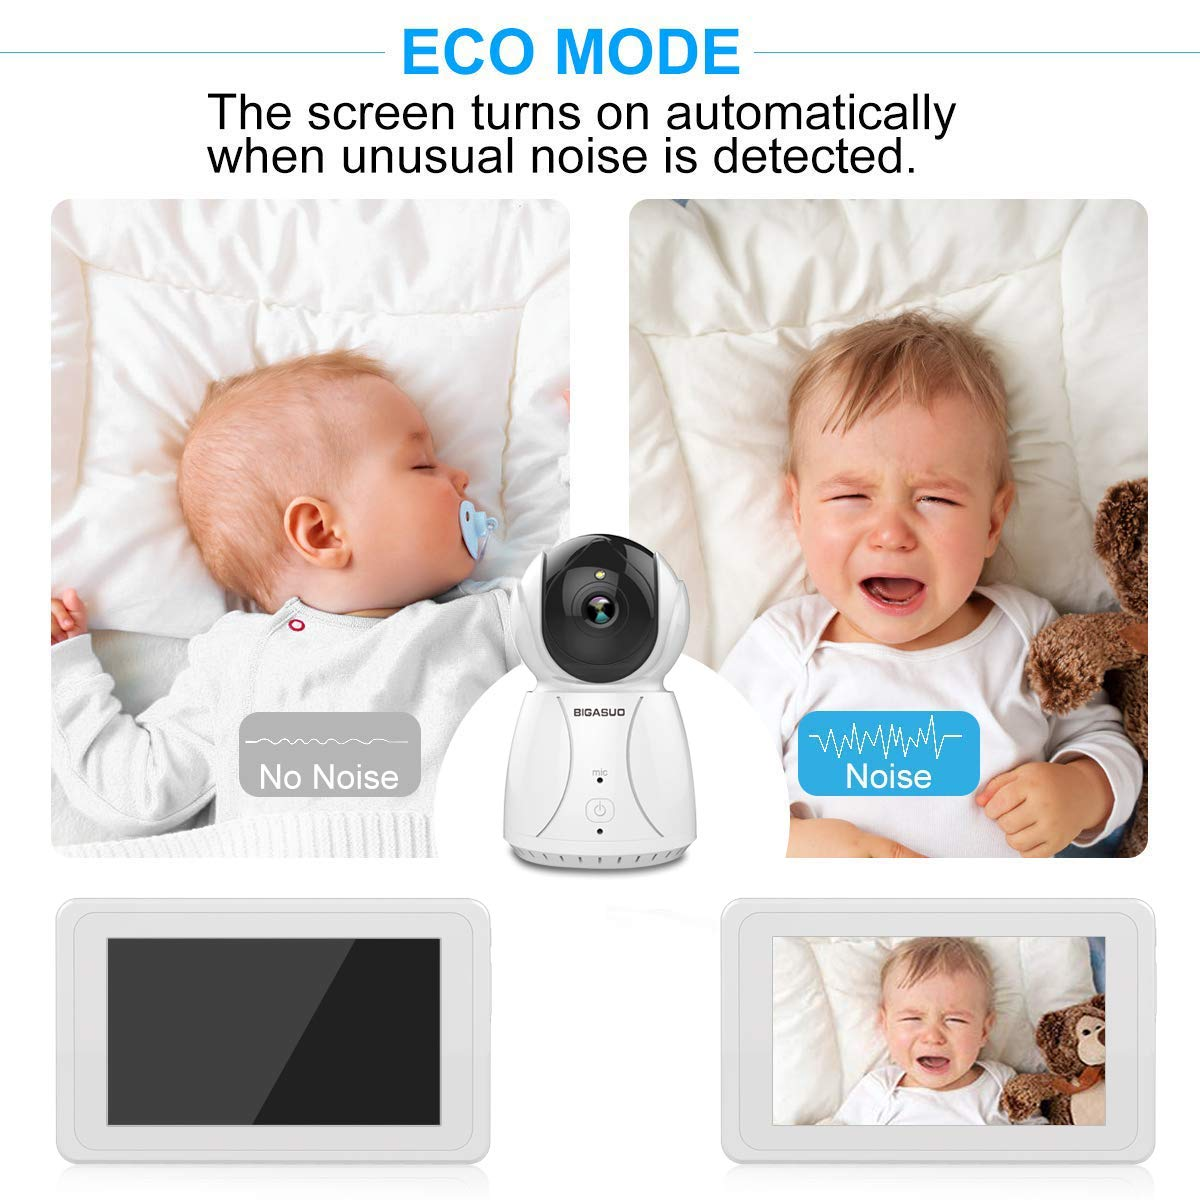 BIGASUO Upgrade Baby Monitor, Video Baby Monitor 7'' Large LCD Screen, Baby Monitors with Camera and Audio Night Vision, Support Multi Camera, Two Way Talk Temperature Sensor, Built-in Lullabies by BIGASUO (Image #6)